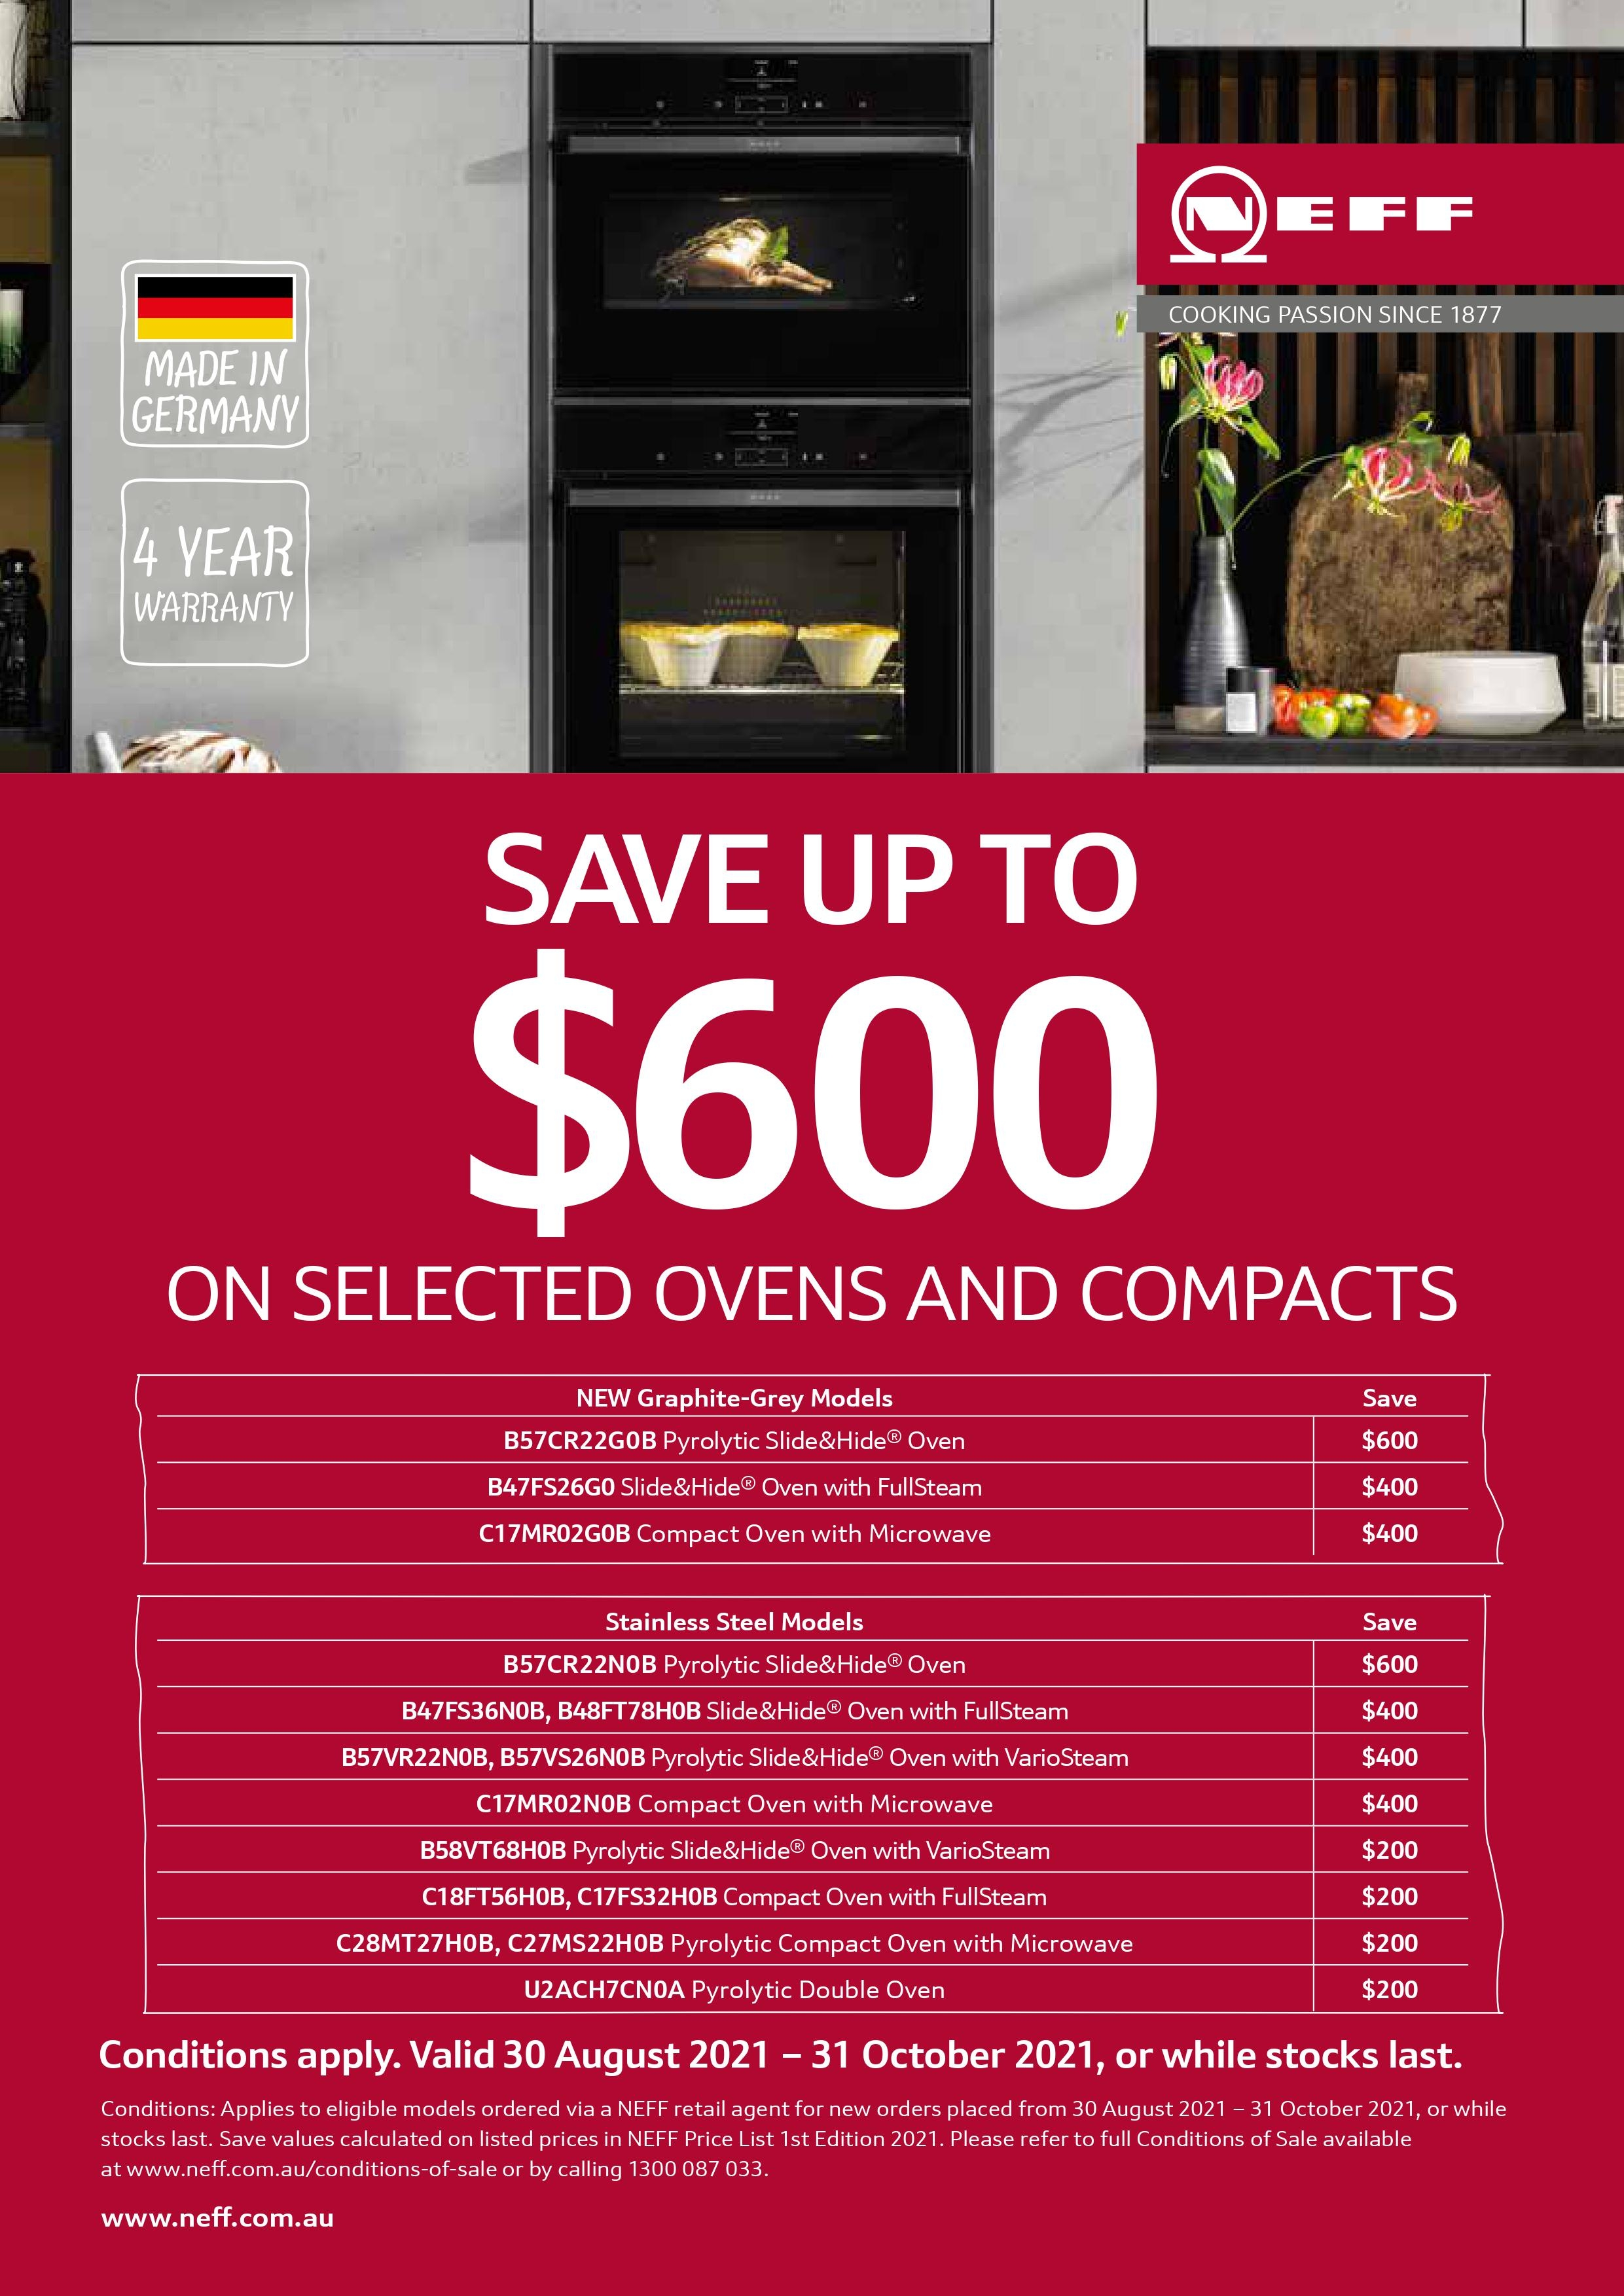 NEFF Save Up To $600 Ovens Promo Sep Oct 2021